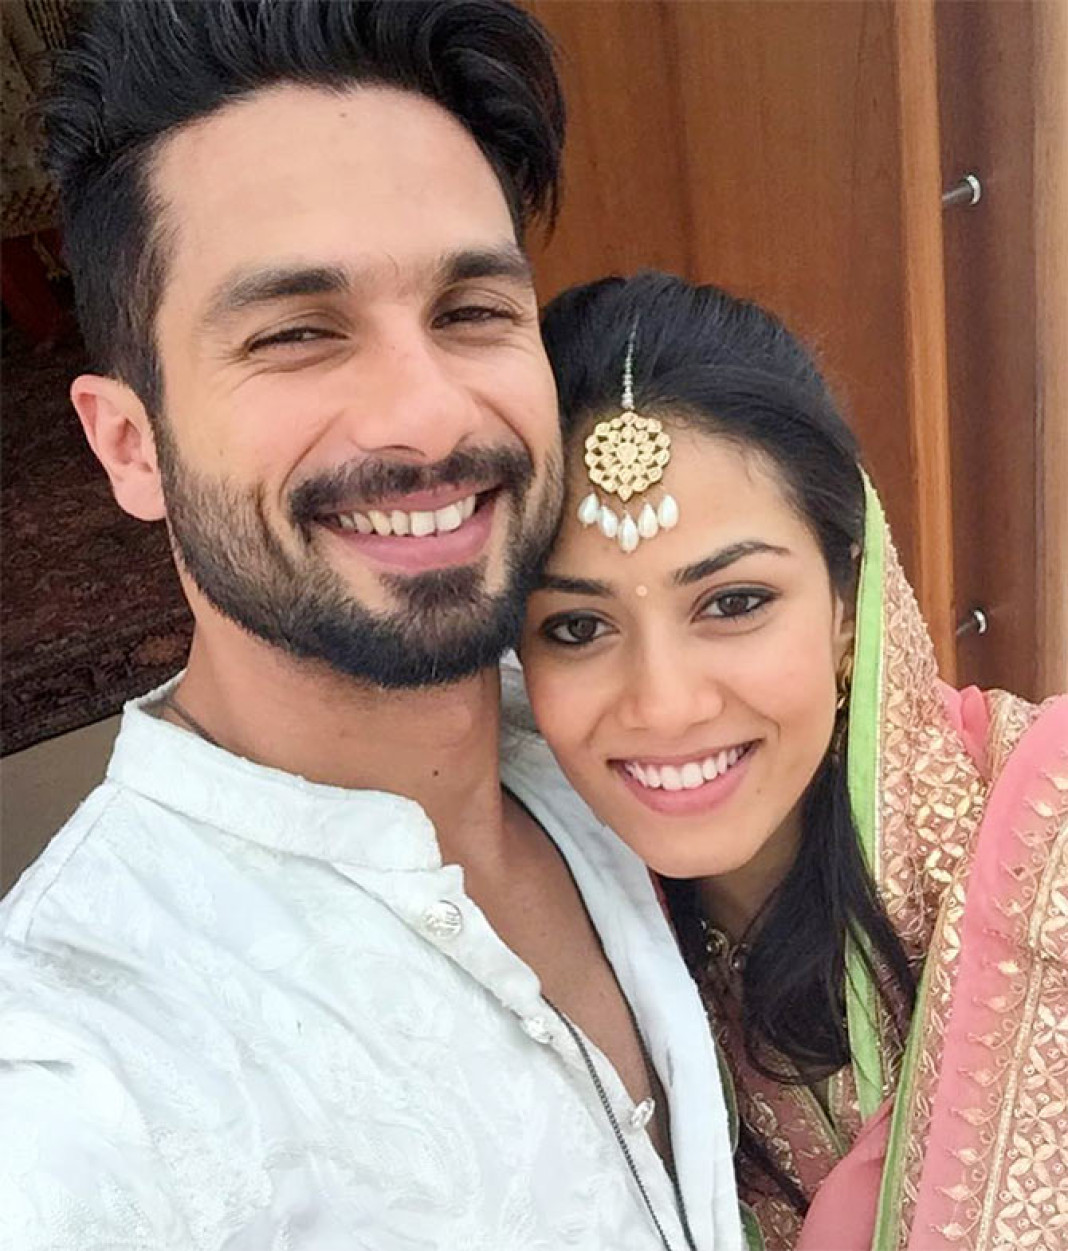 shahid kapoor married mira rajput